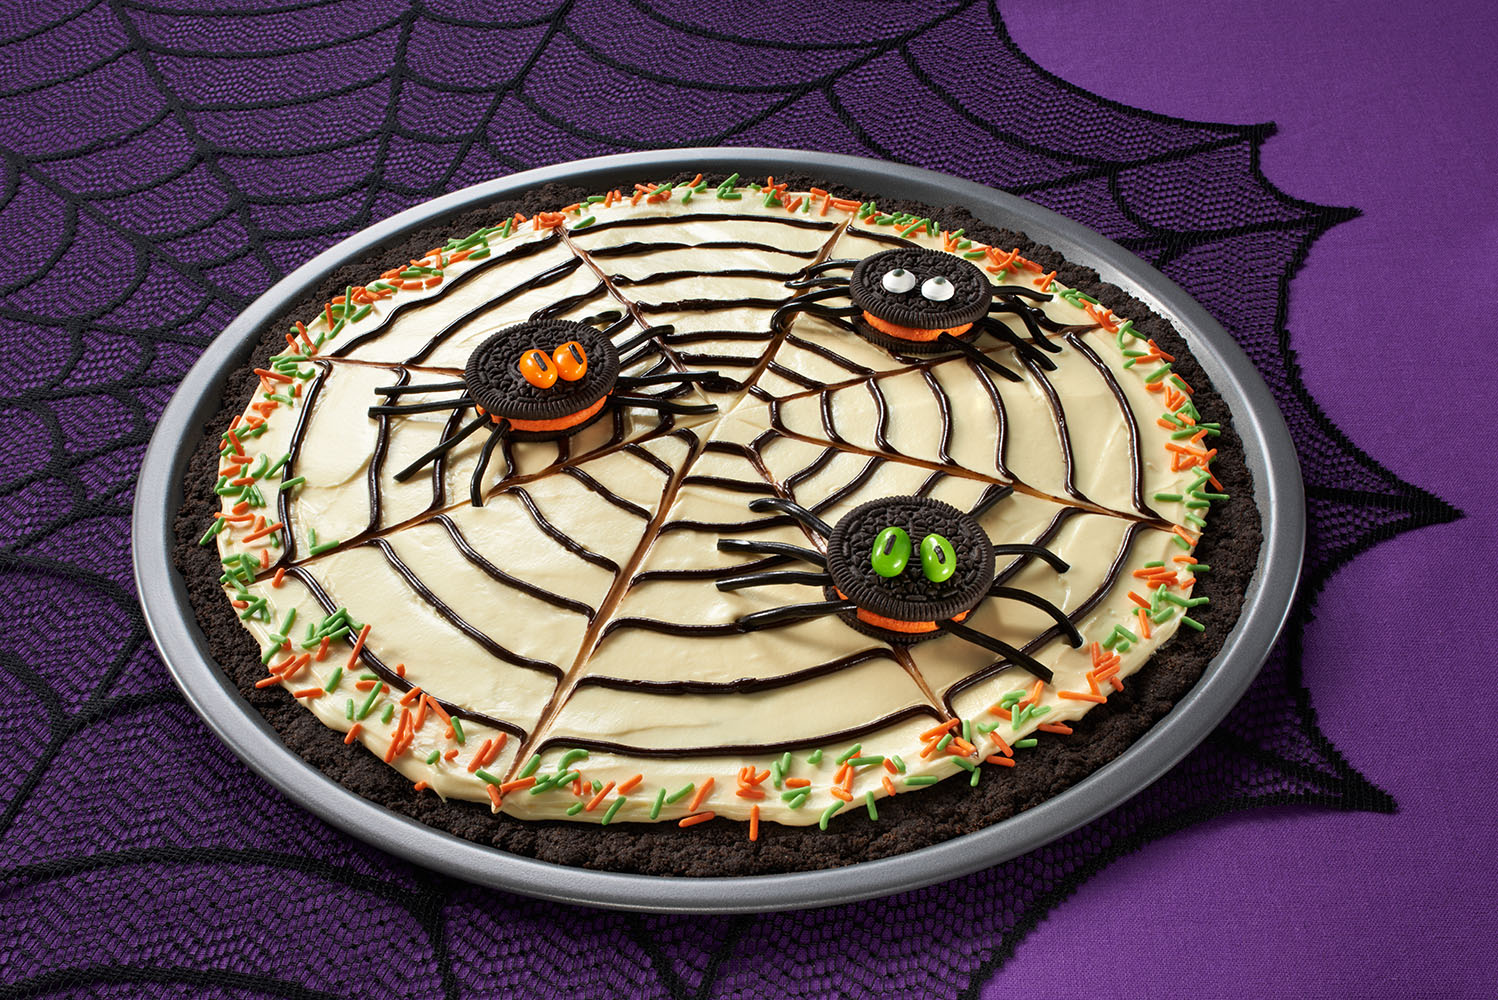 OREO Spider Web Cookie Pizza Image 1